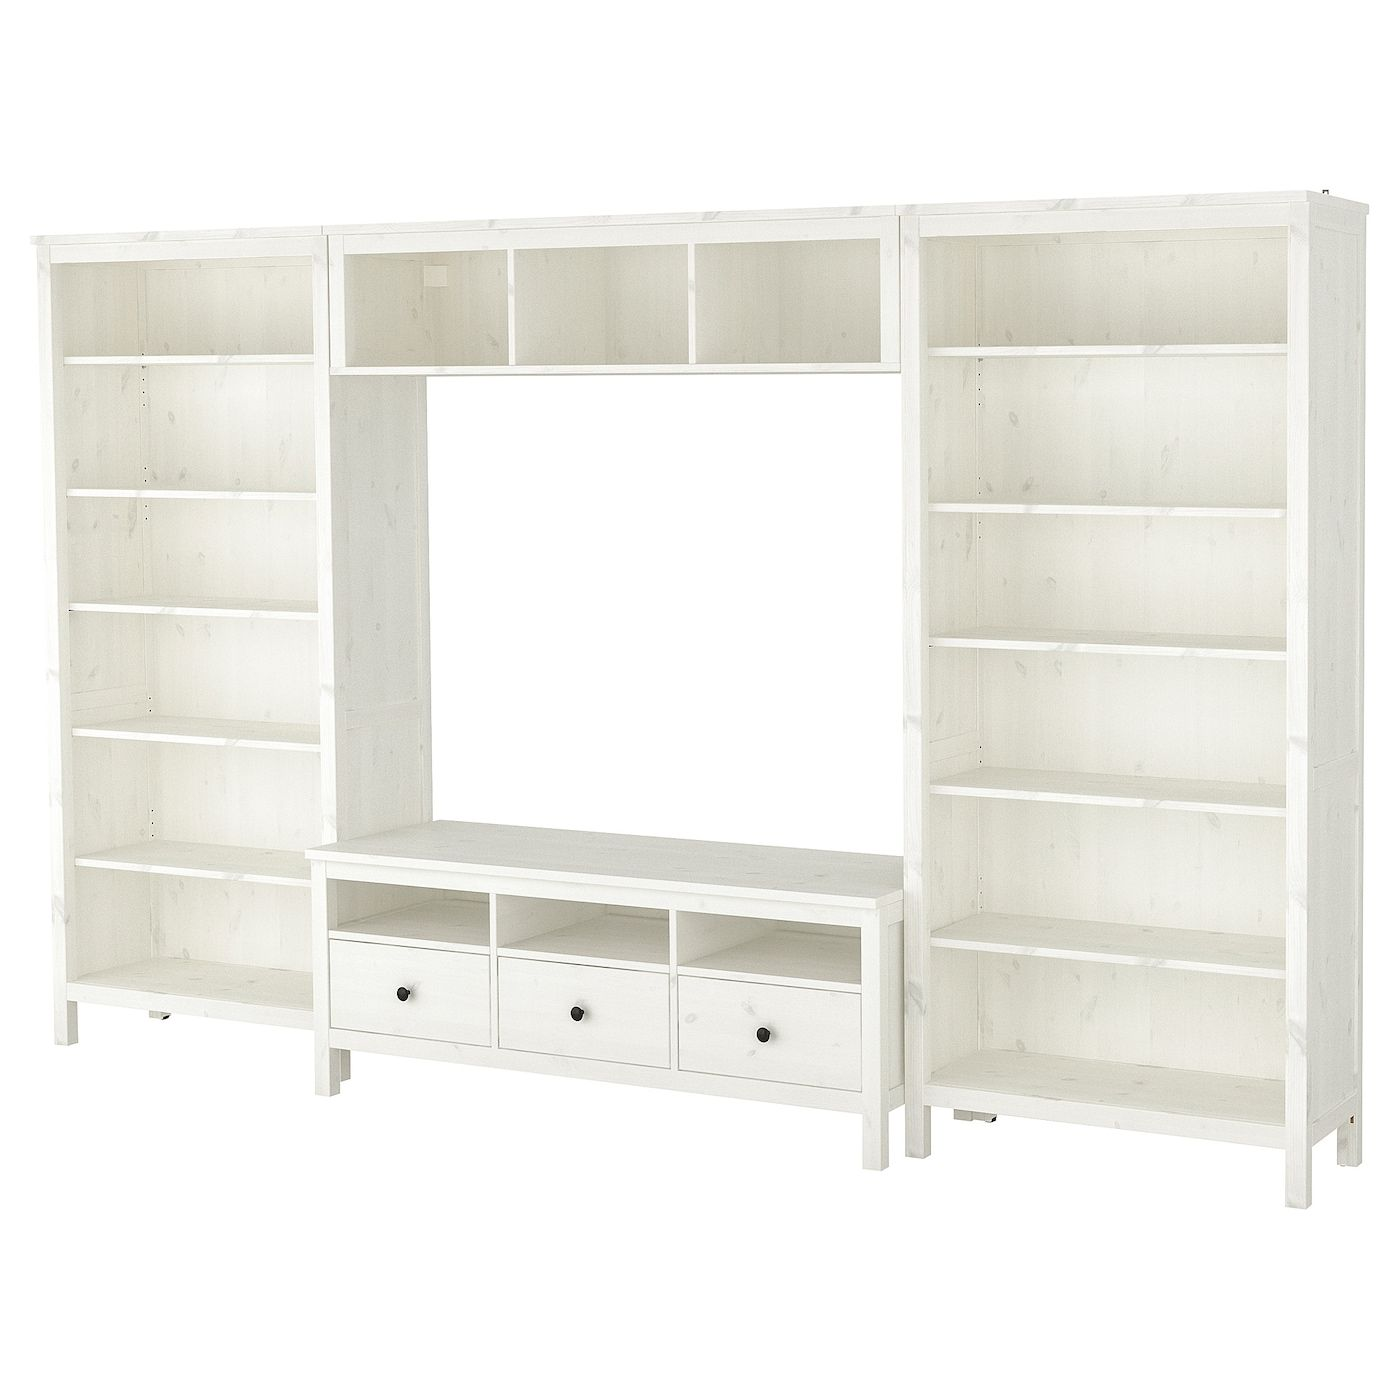 Tv Storage Combination White Stain 128 3 8x77 1 2 In 2019 Tv